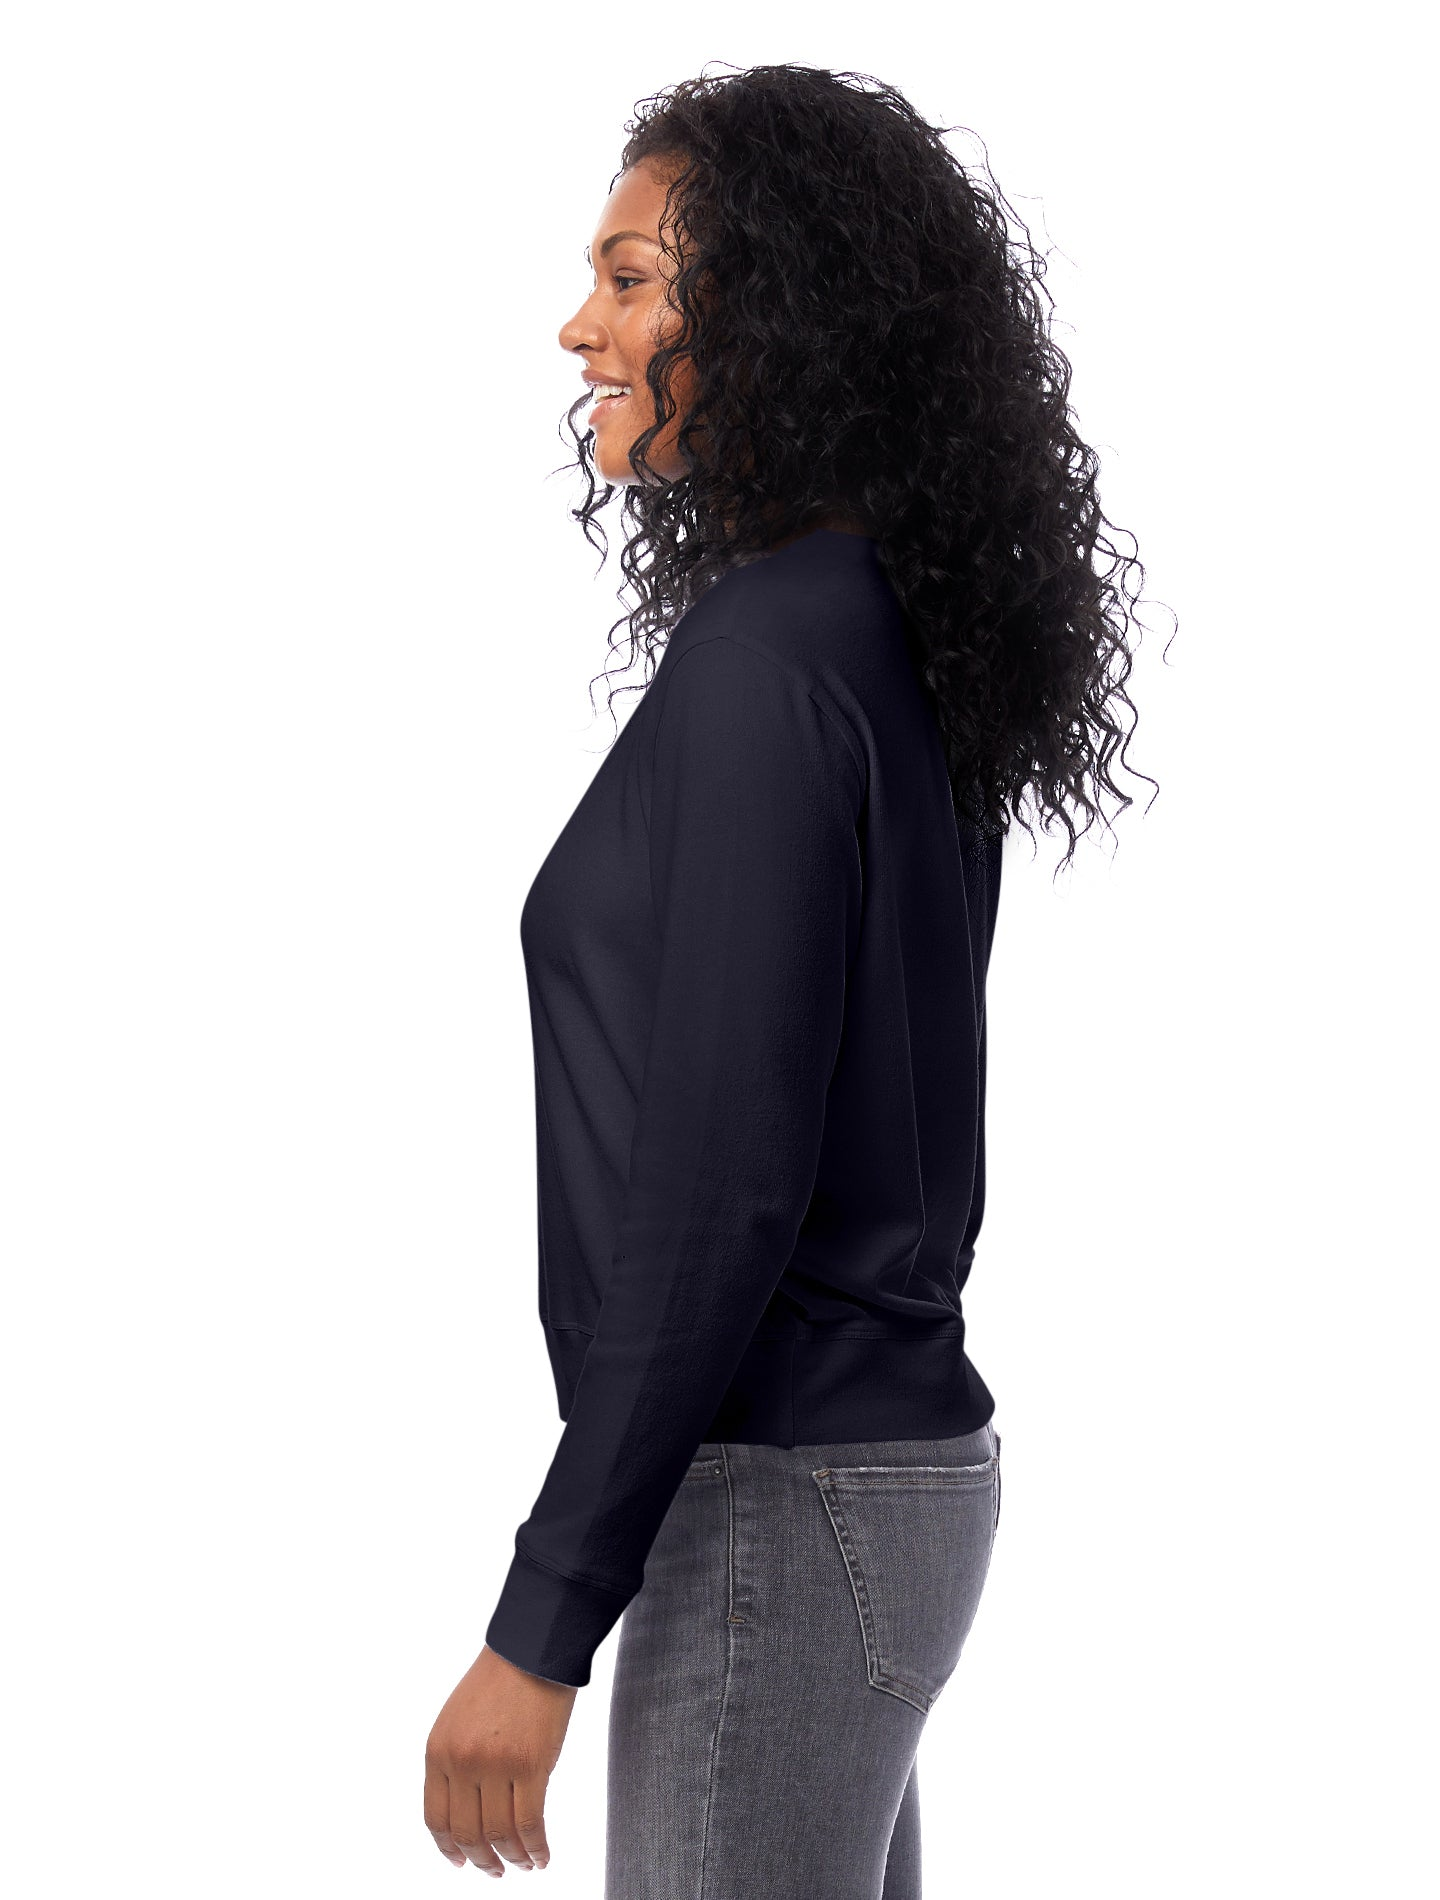 Cotton Modal Pullover Sweatshirt in Midnight